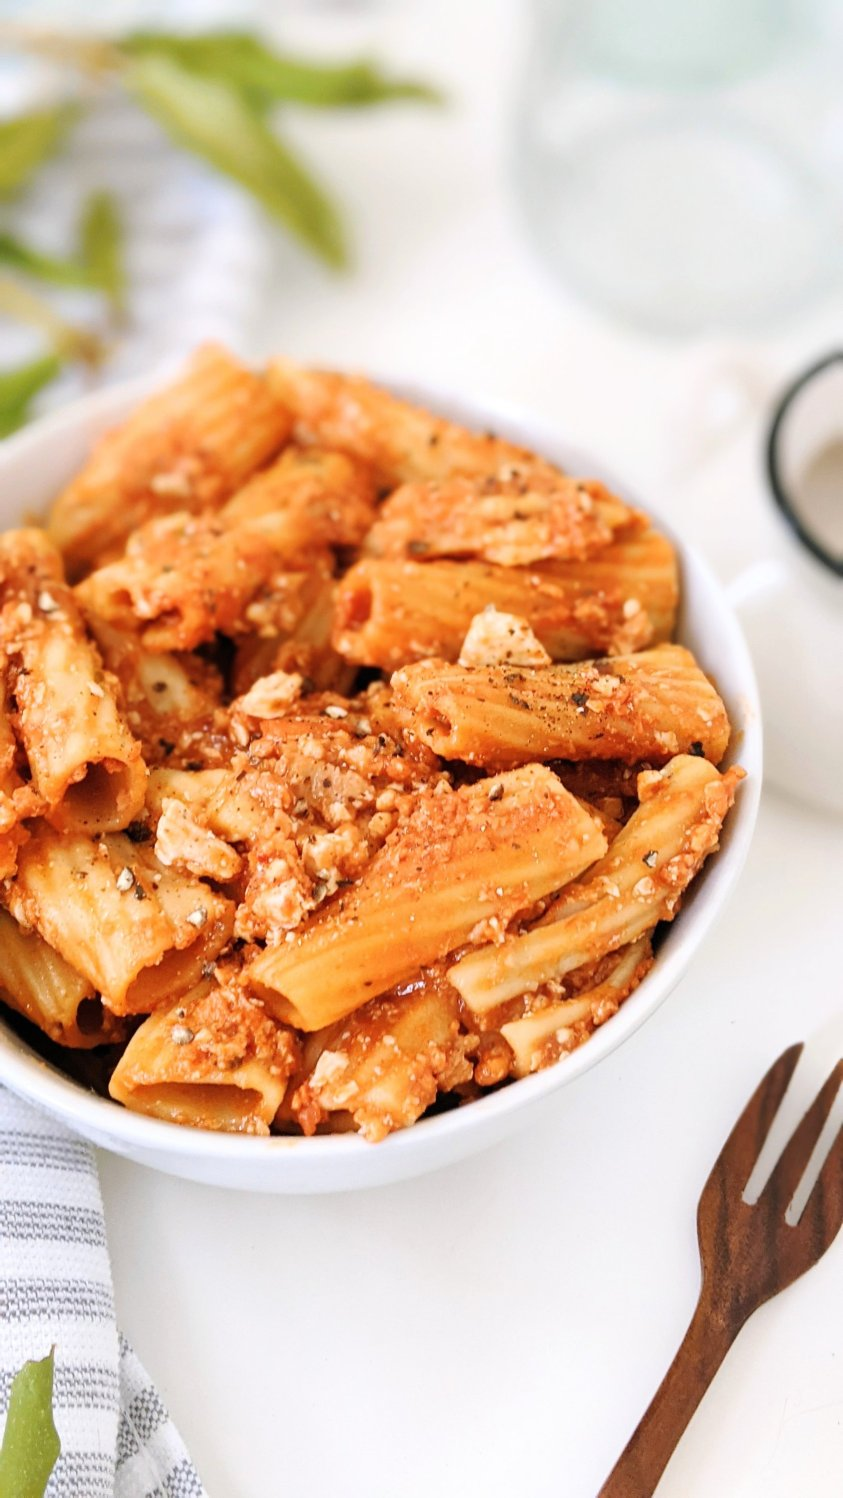 tofu pasta sauce vegan vegetarian high protein meatless pasta recipes healthy pastas with tofu italian bolognese with tofu recipe no meat bolognese sauce